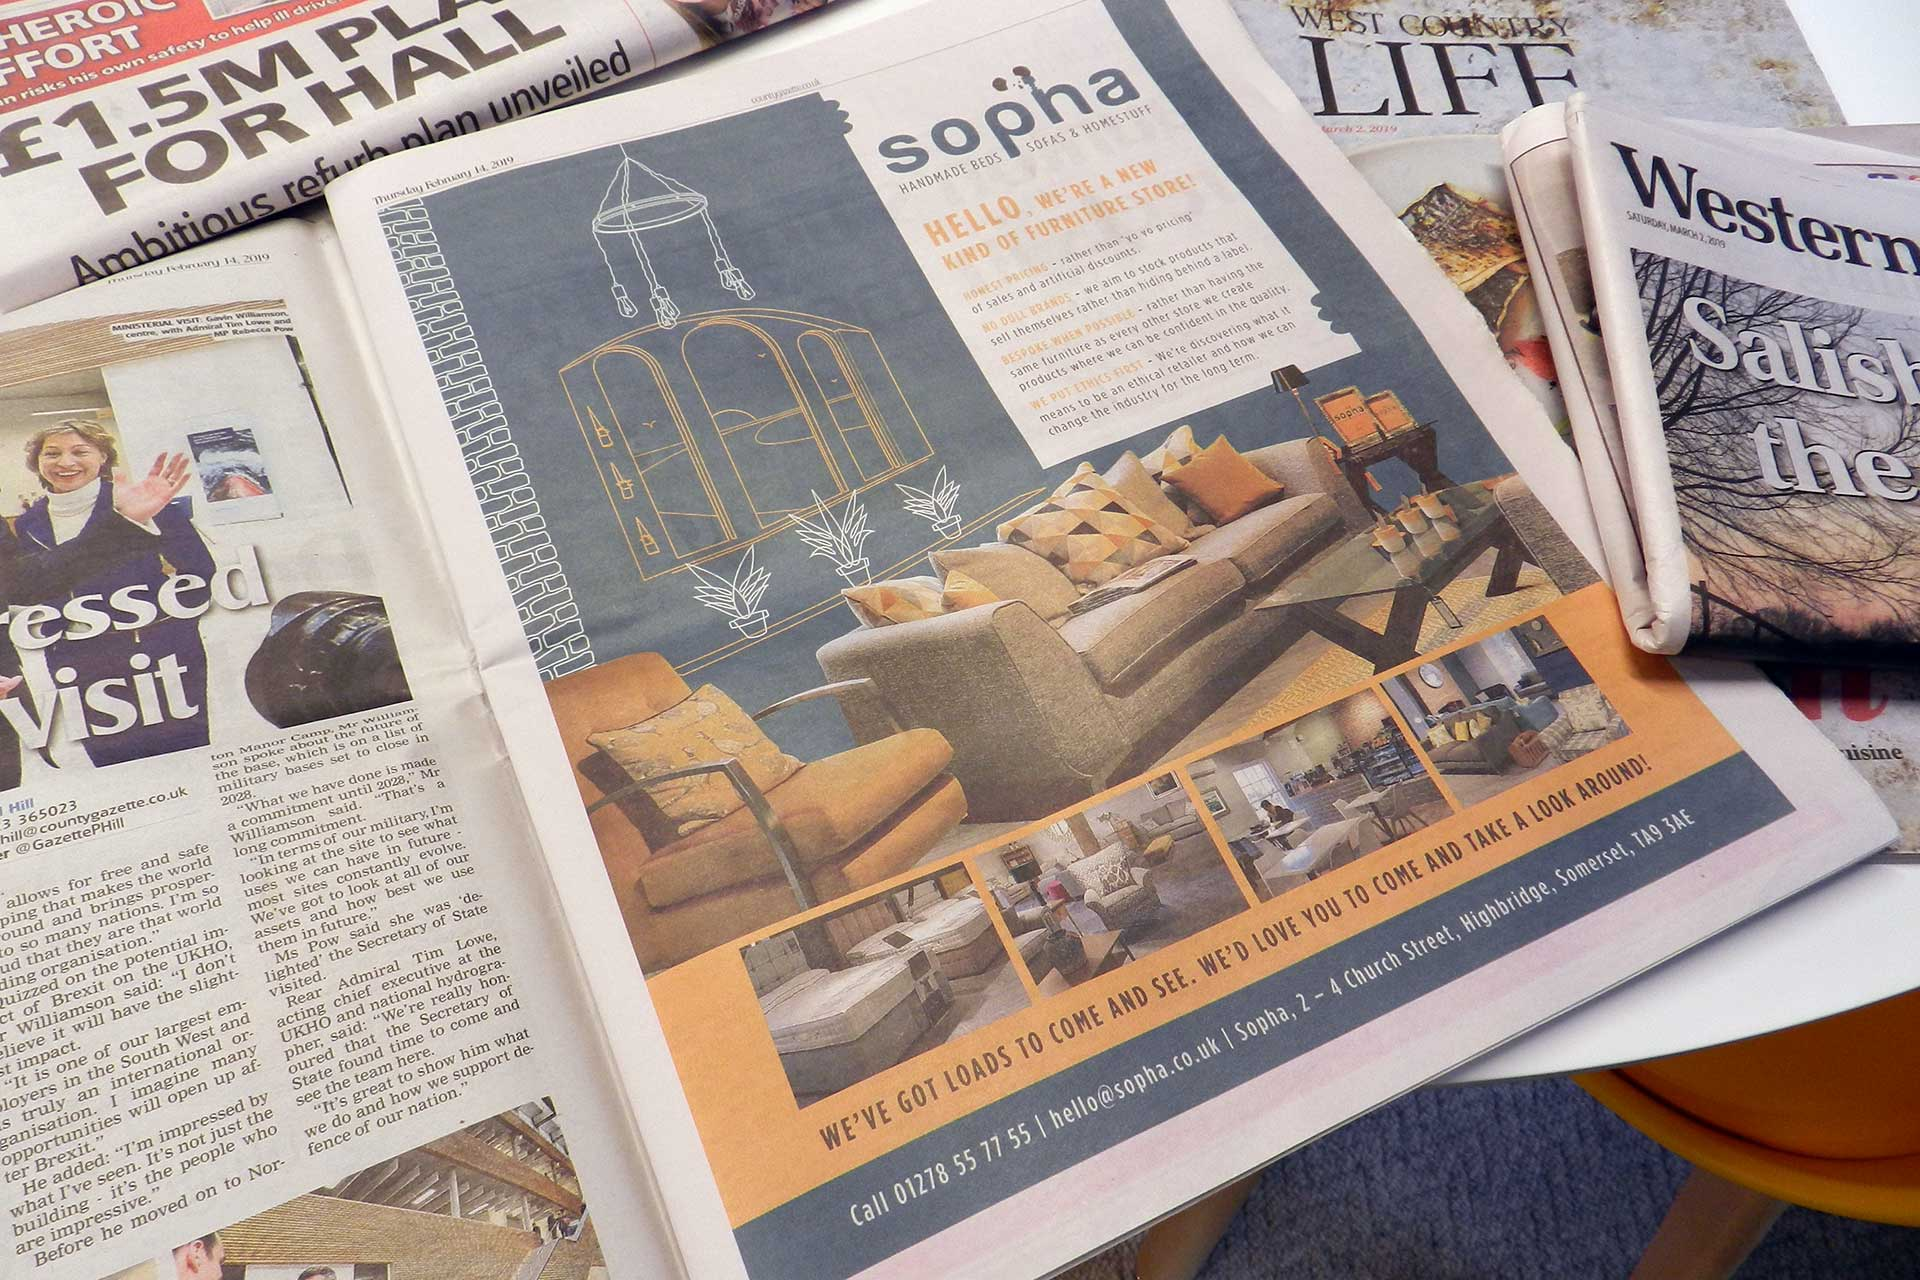 Sopha illustrative furniture newspaper advert, Somerset